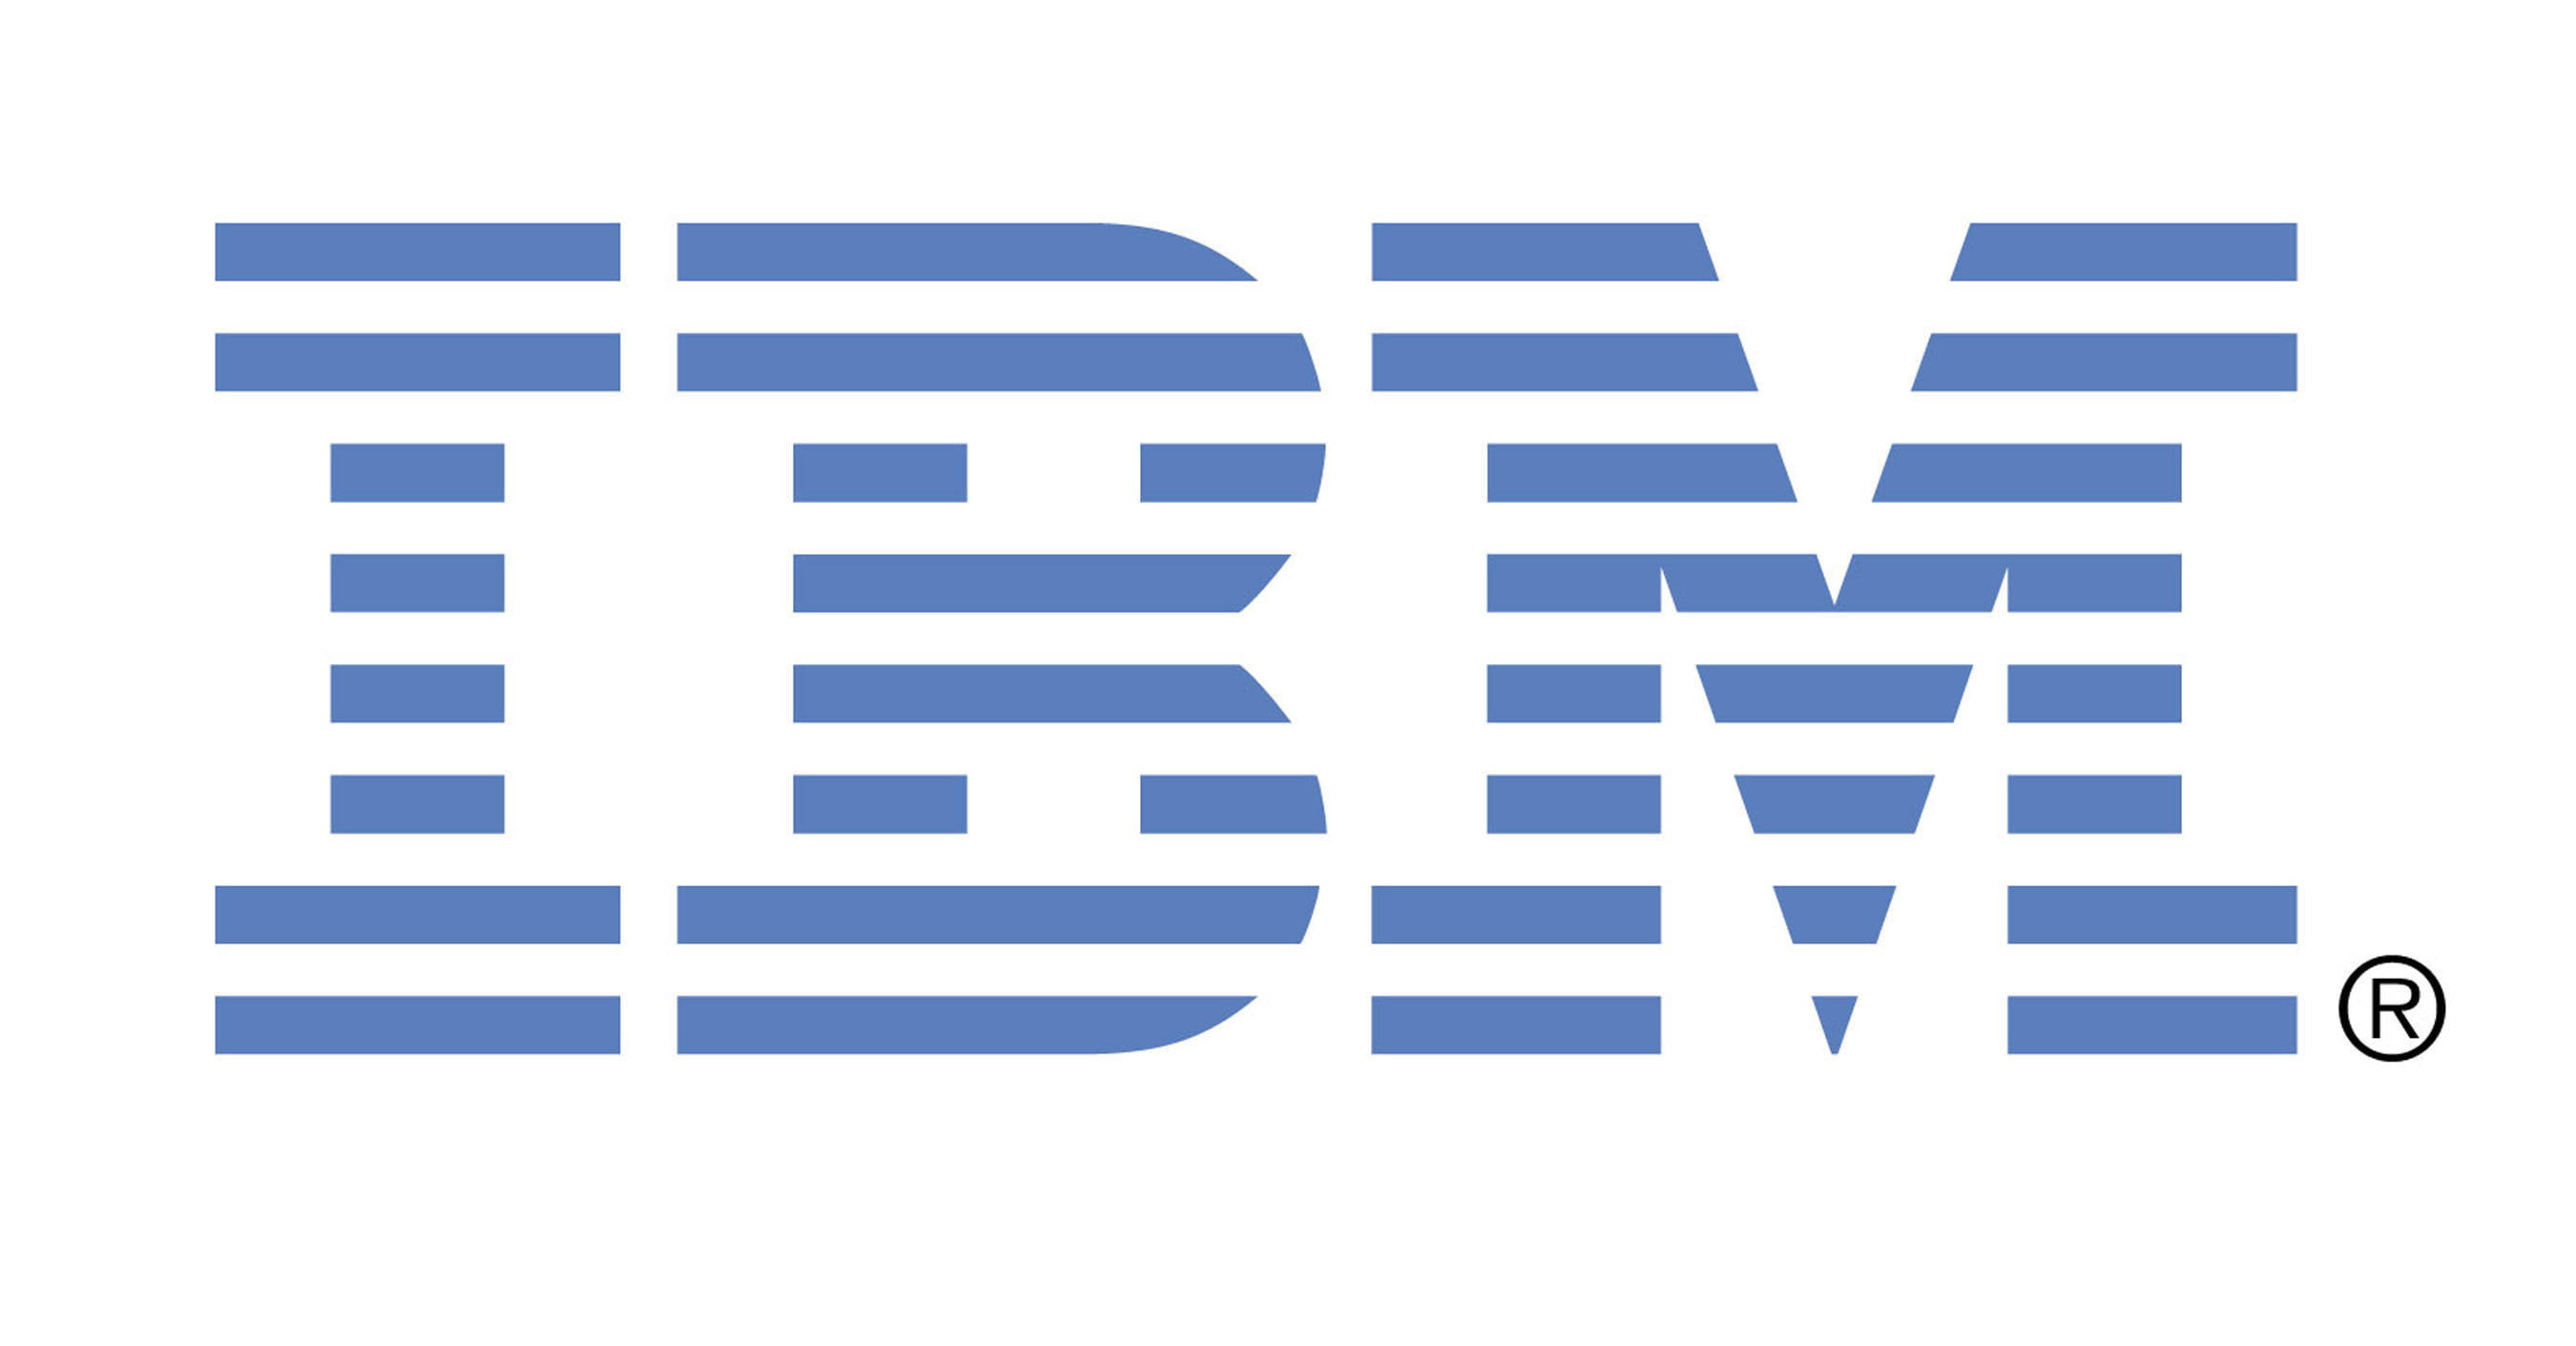 IBM: The Blockchain Will Change Business